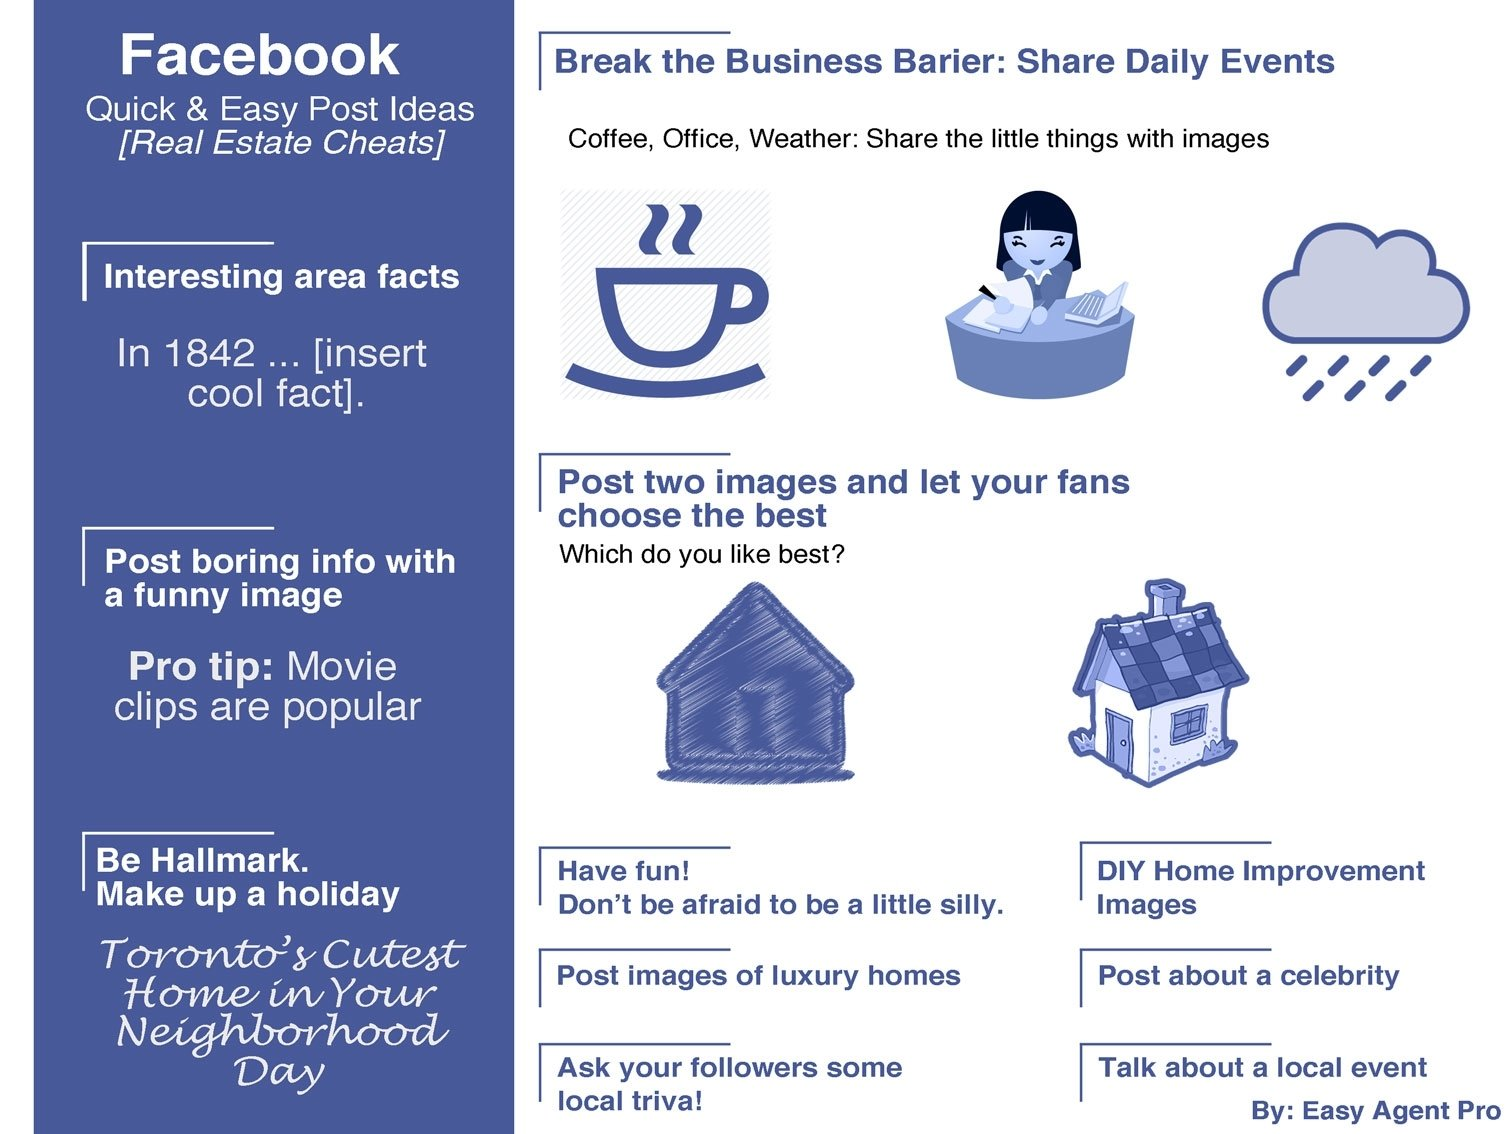 10 Unique Marketing Ideas For Real Estate Agents infographic quick and easy facebook post ideas for real estate 1 2020